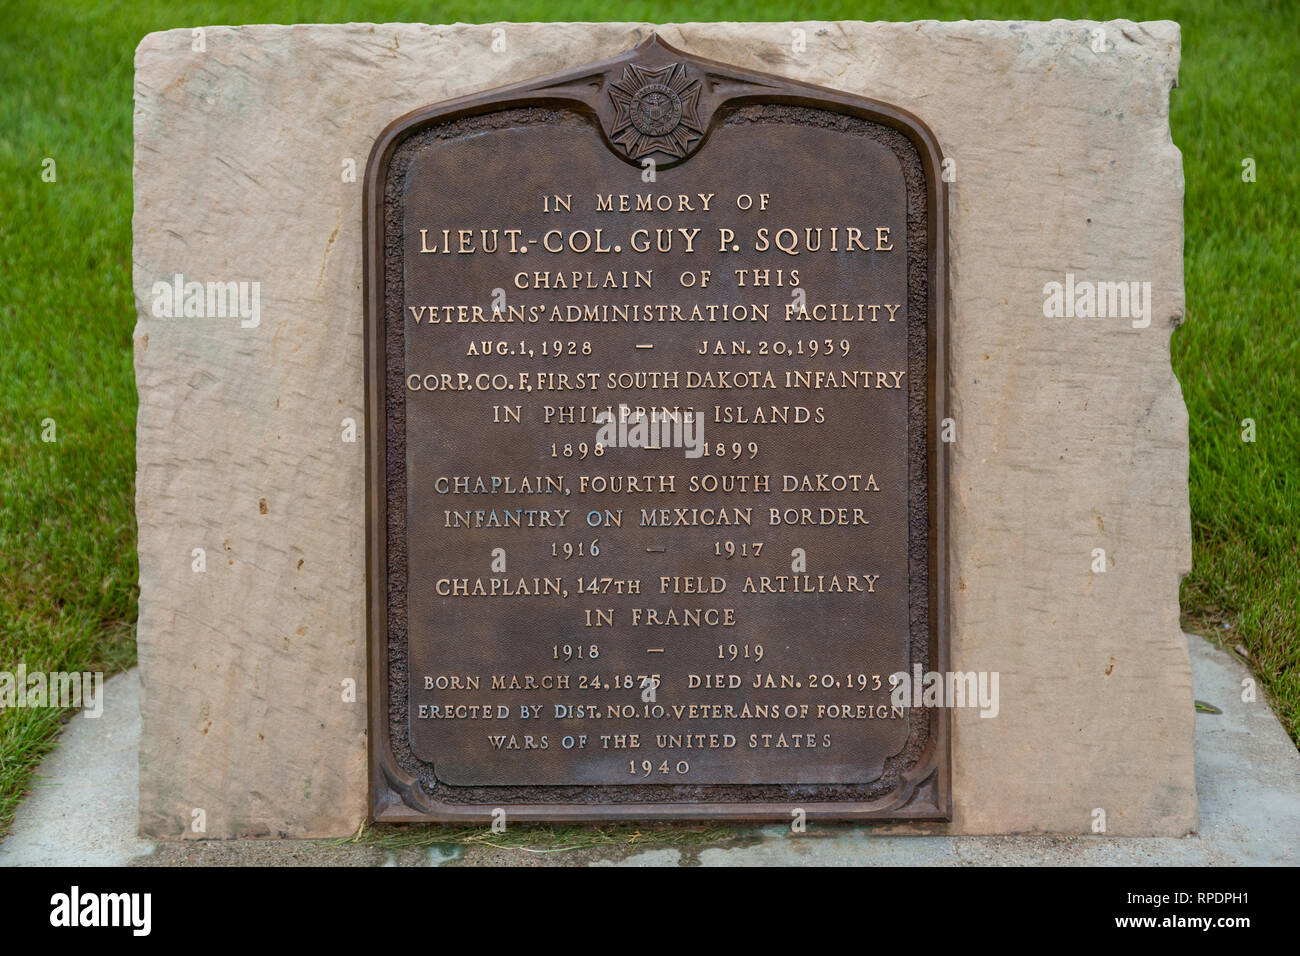 HOT SPRINGS, SOUTH DAKOTA - June 8, 2014:  A metal sign memorializing the life of Lieutenant Colonel Guy P Squire in the Hot Springs National Cemetery - Stock Image